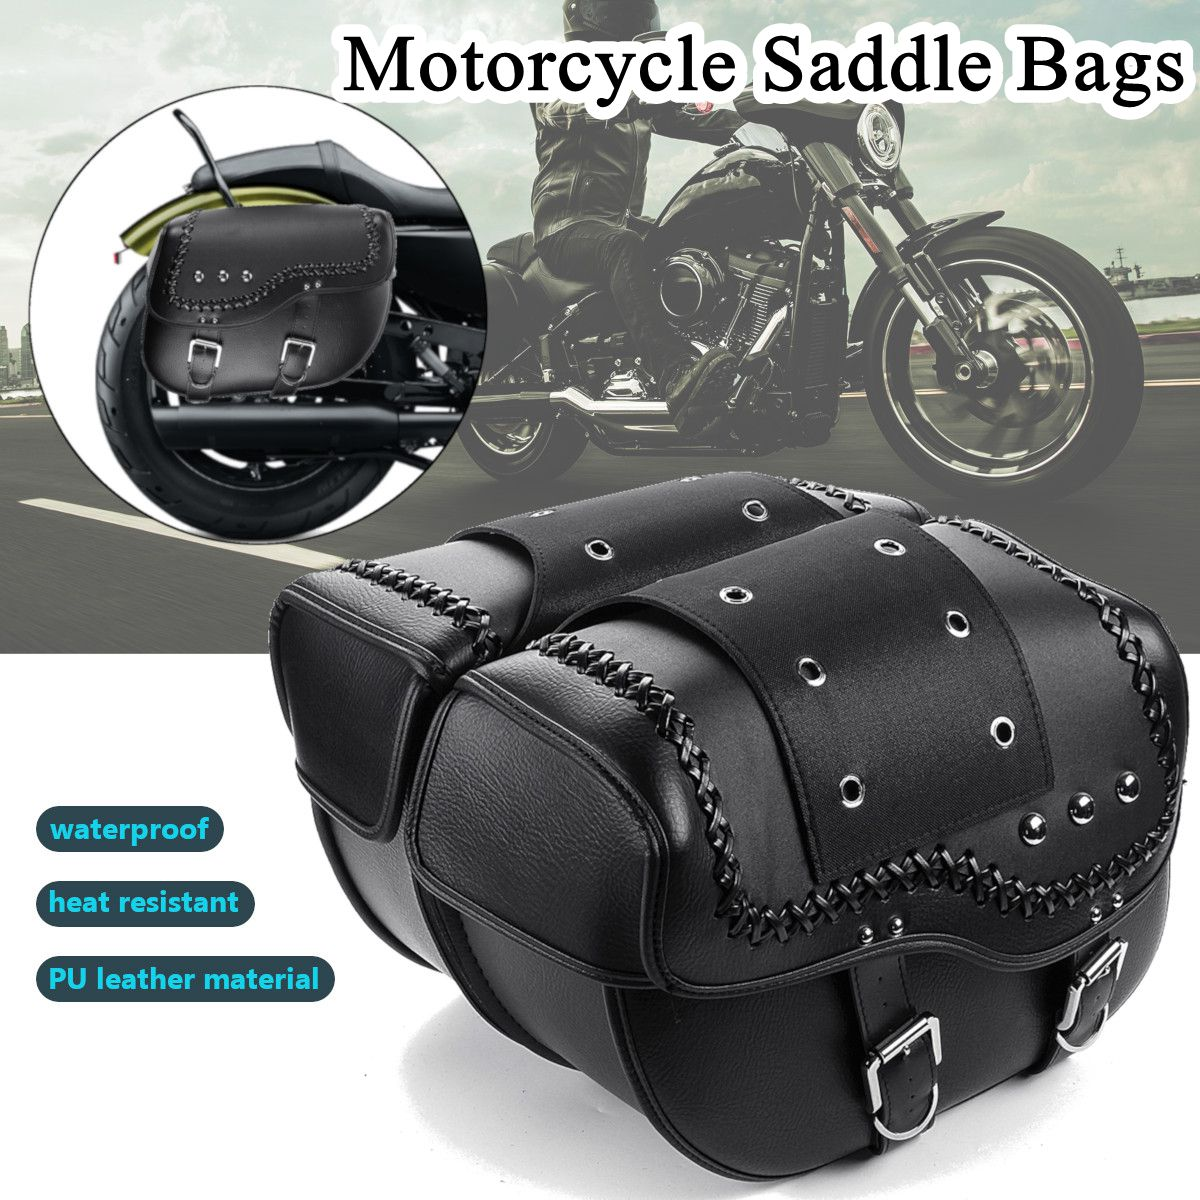 2pcs Universal PU Leather Motorcycle Saddlebag for Harley Sportster XL883 XL1200 for Honda for Suzuki for Kawasaki for Yamaha2pcs Universal PU Leather Motorcycle Saddlebag for Harley Sportster XL883 XL1200 for Honda for Suzuki for Kawasaki for Yamaha